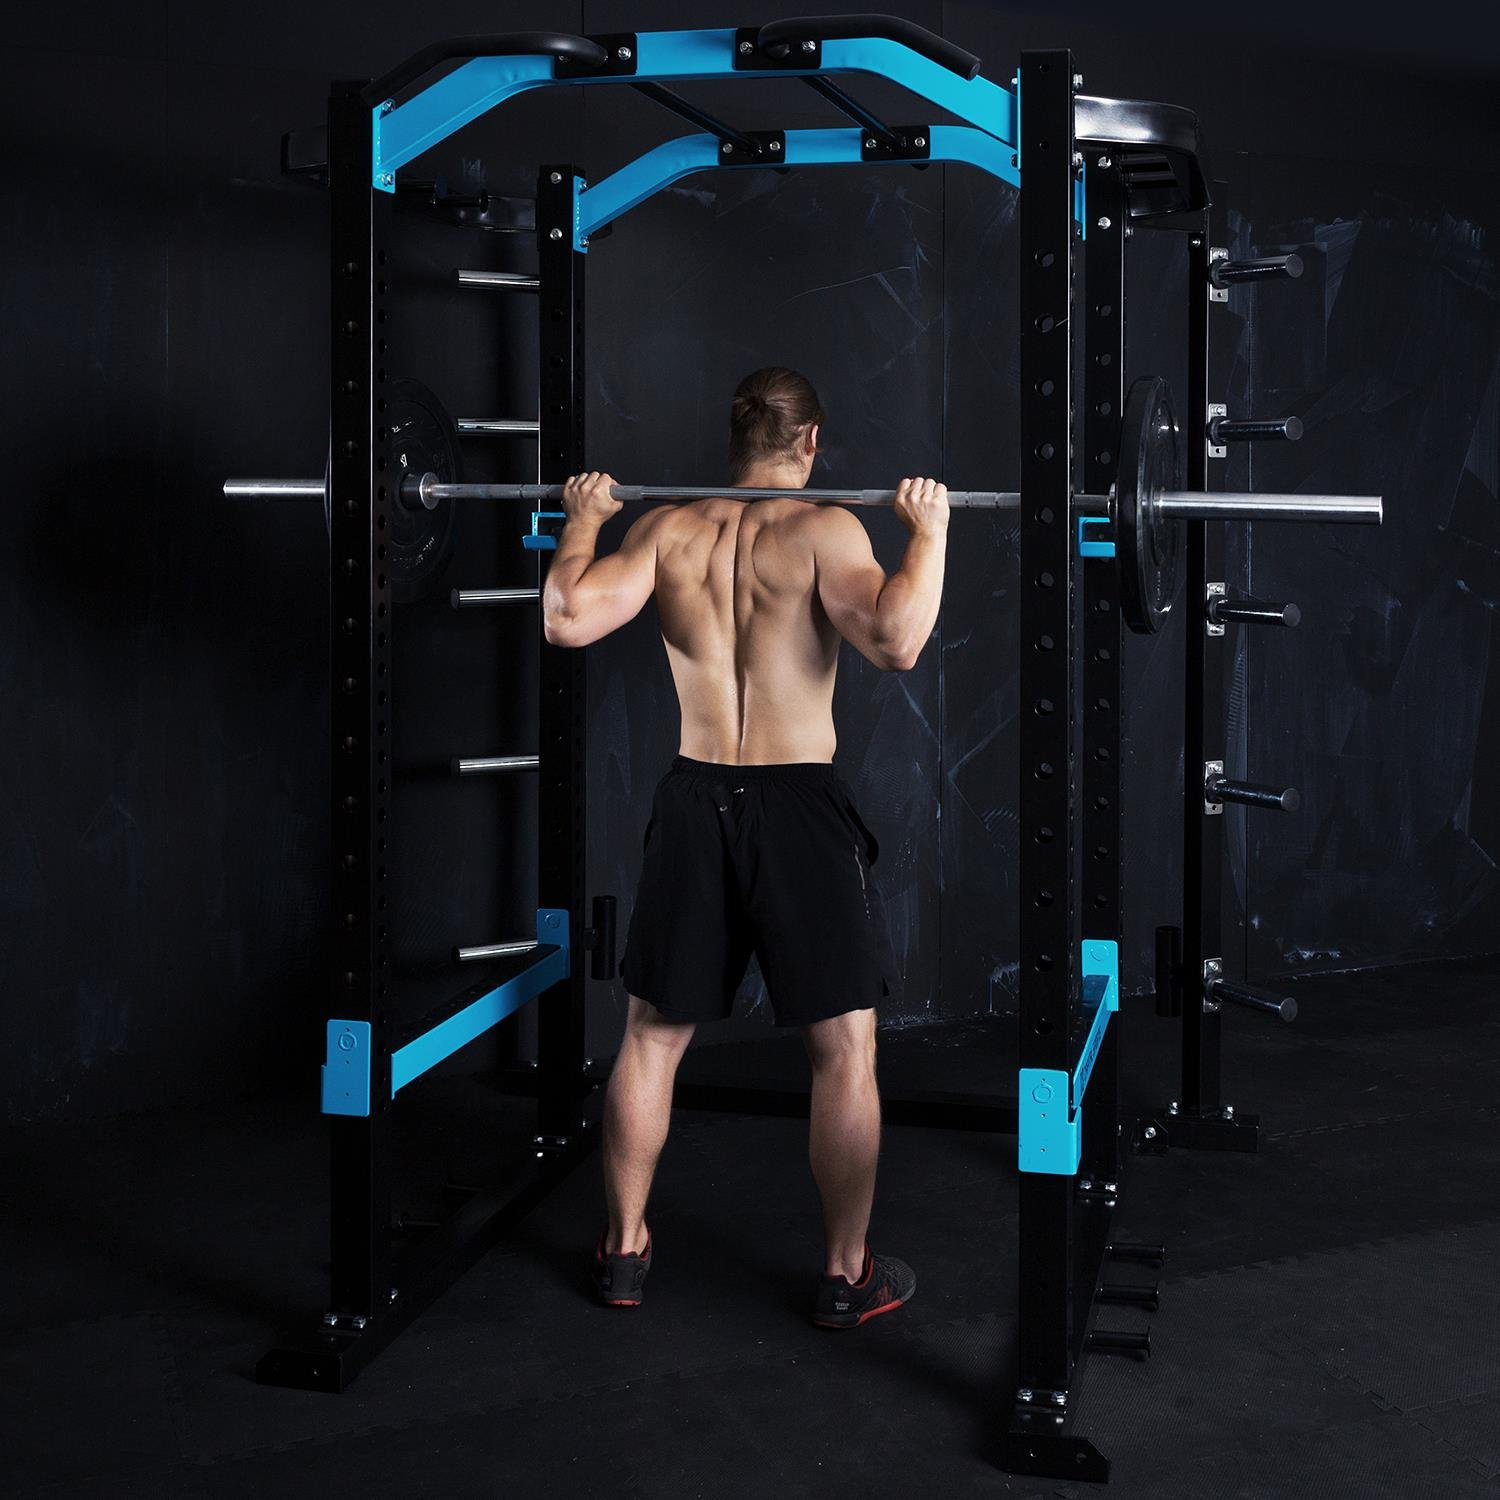 SPORTS CAPITAL Amazor P Rack Monkey Bar Safety Spotter estación multifunción entrenamiento gimnasio (Monkey Bar de 87 cm, barra de tracción con mango ...